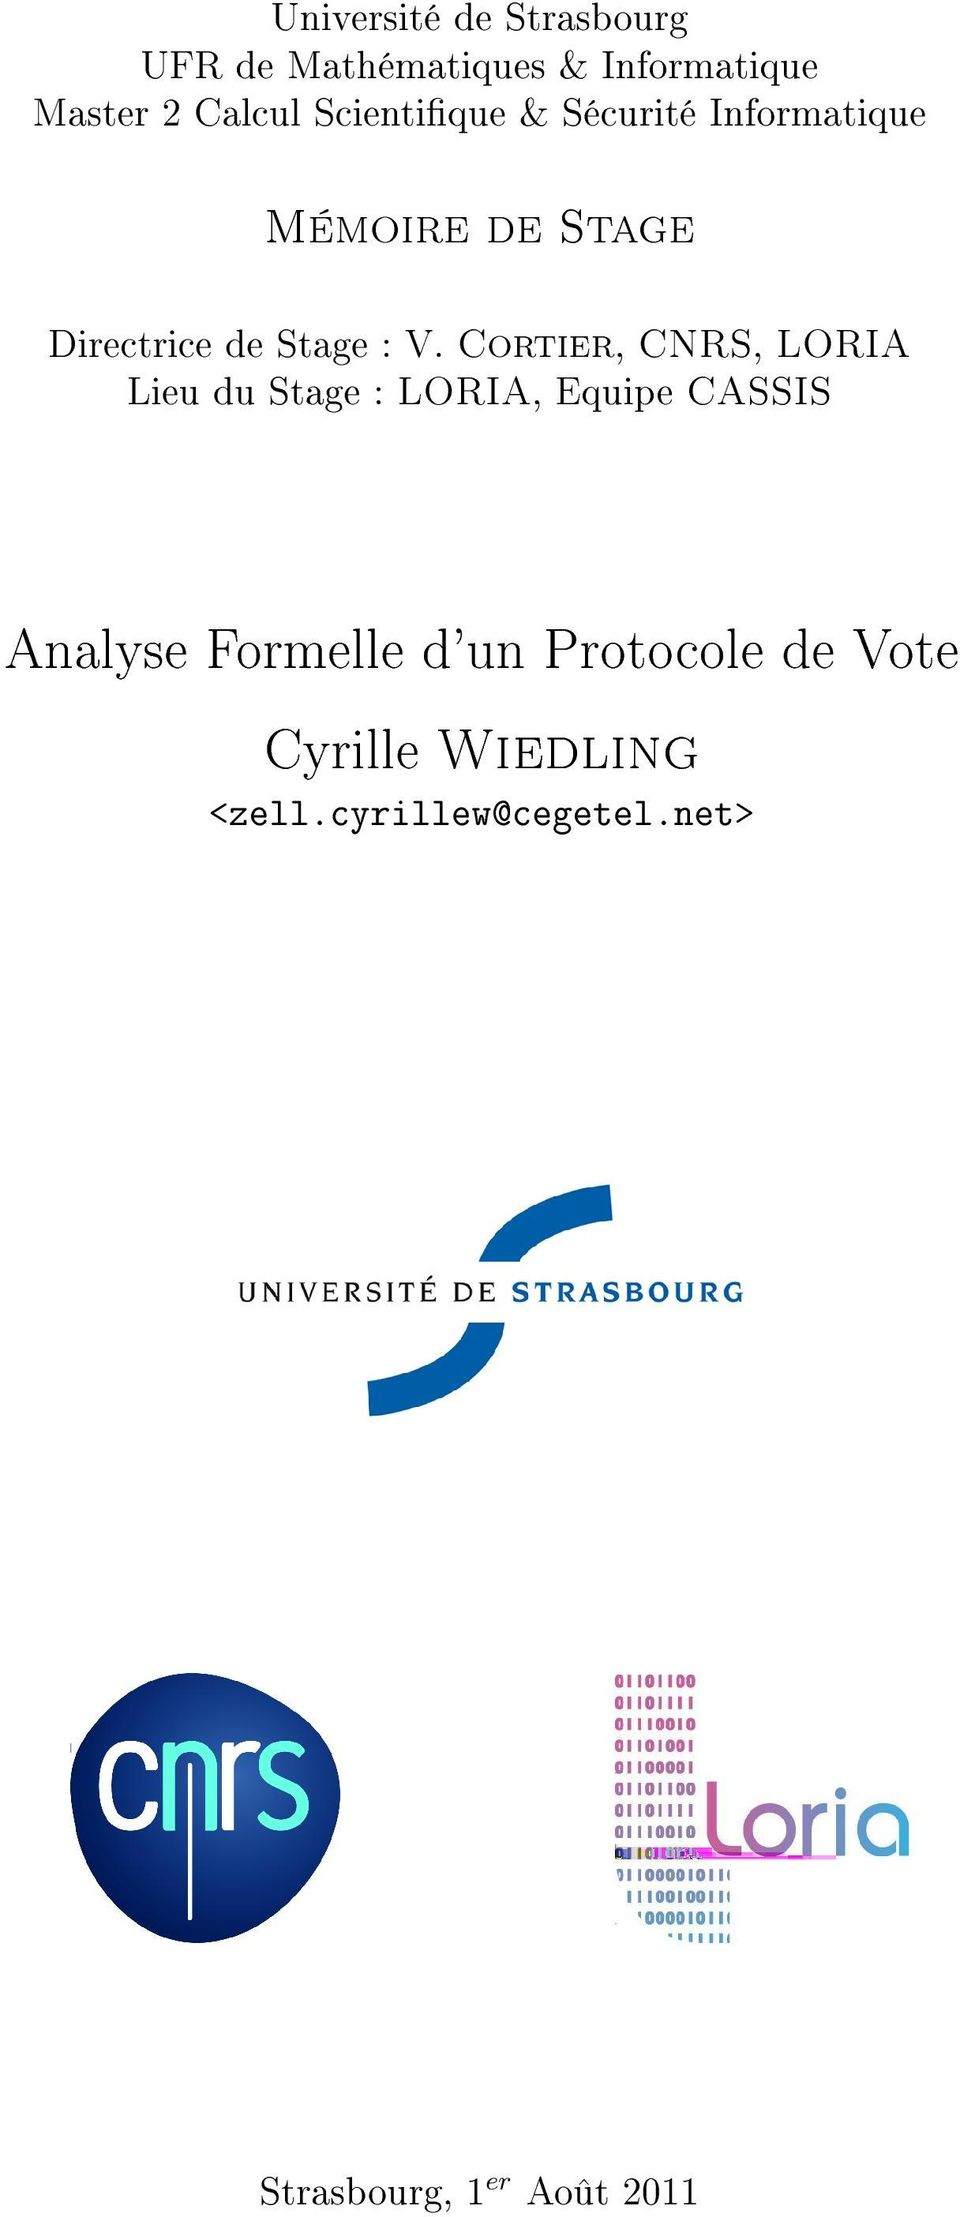 Cortier, CNRS, LORIA Lieu du Stage : LORIA, Equipe CASSIS Analyse Formelle